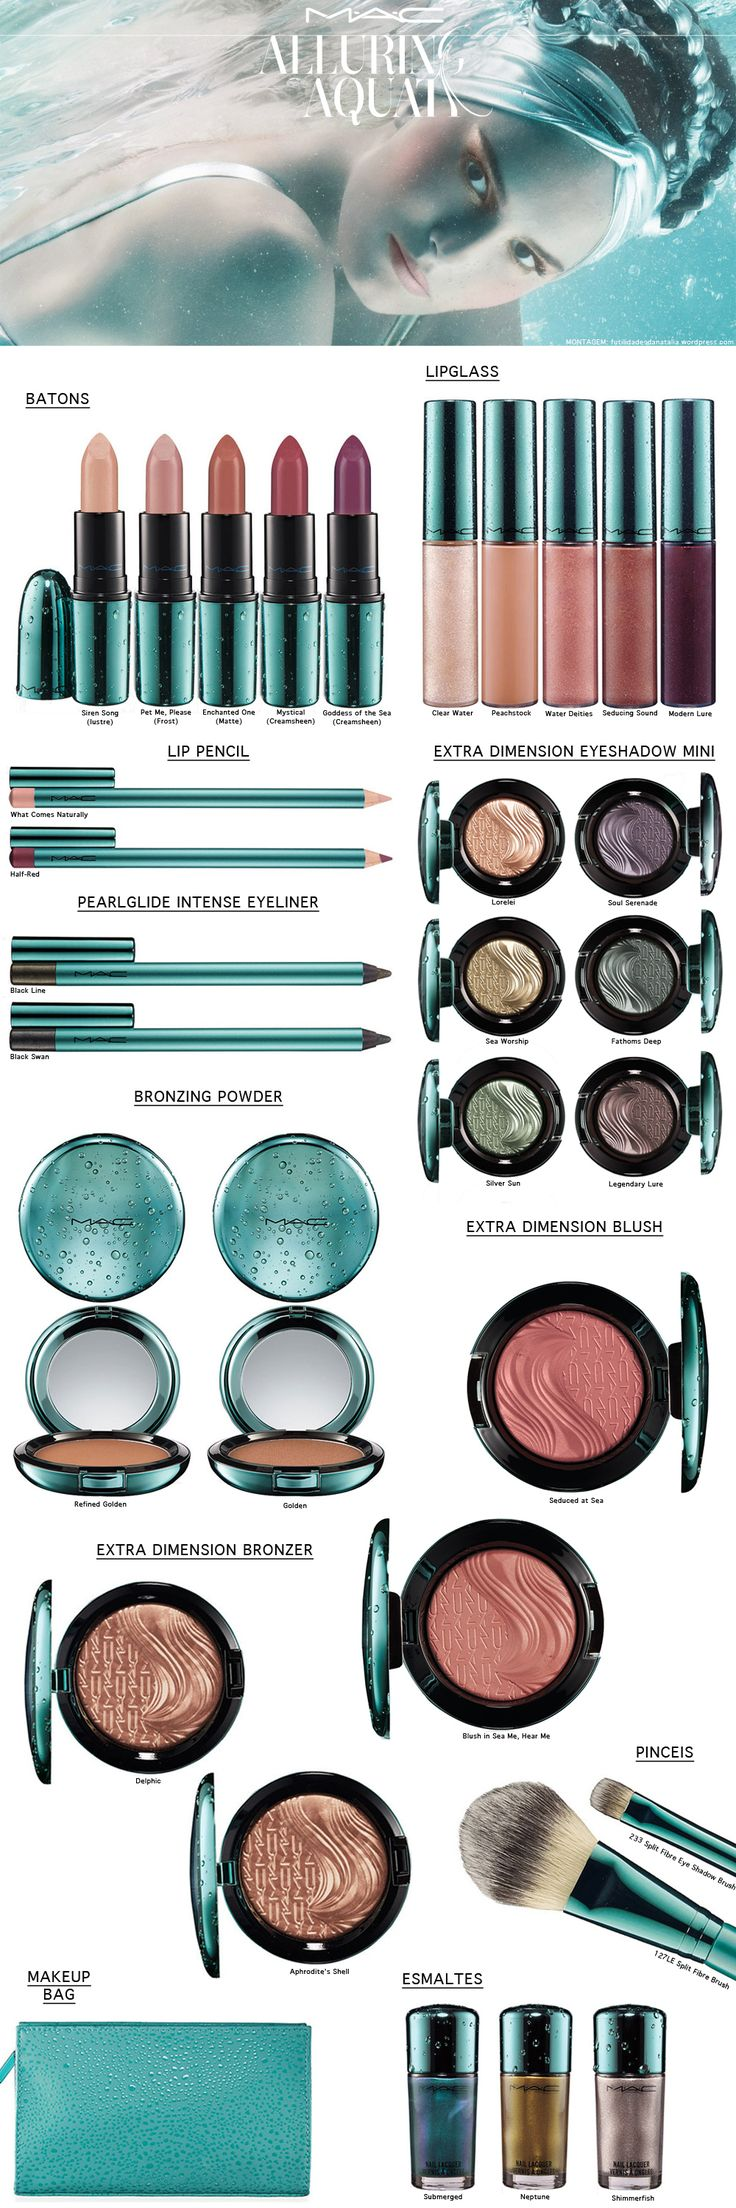 MAC ALLURING AQUA COLLECTION - omg, mermaid makeup!!